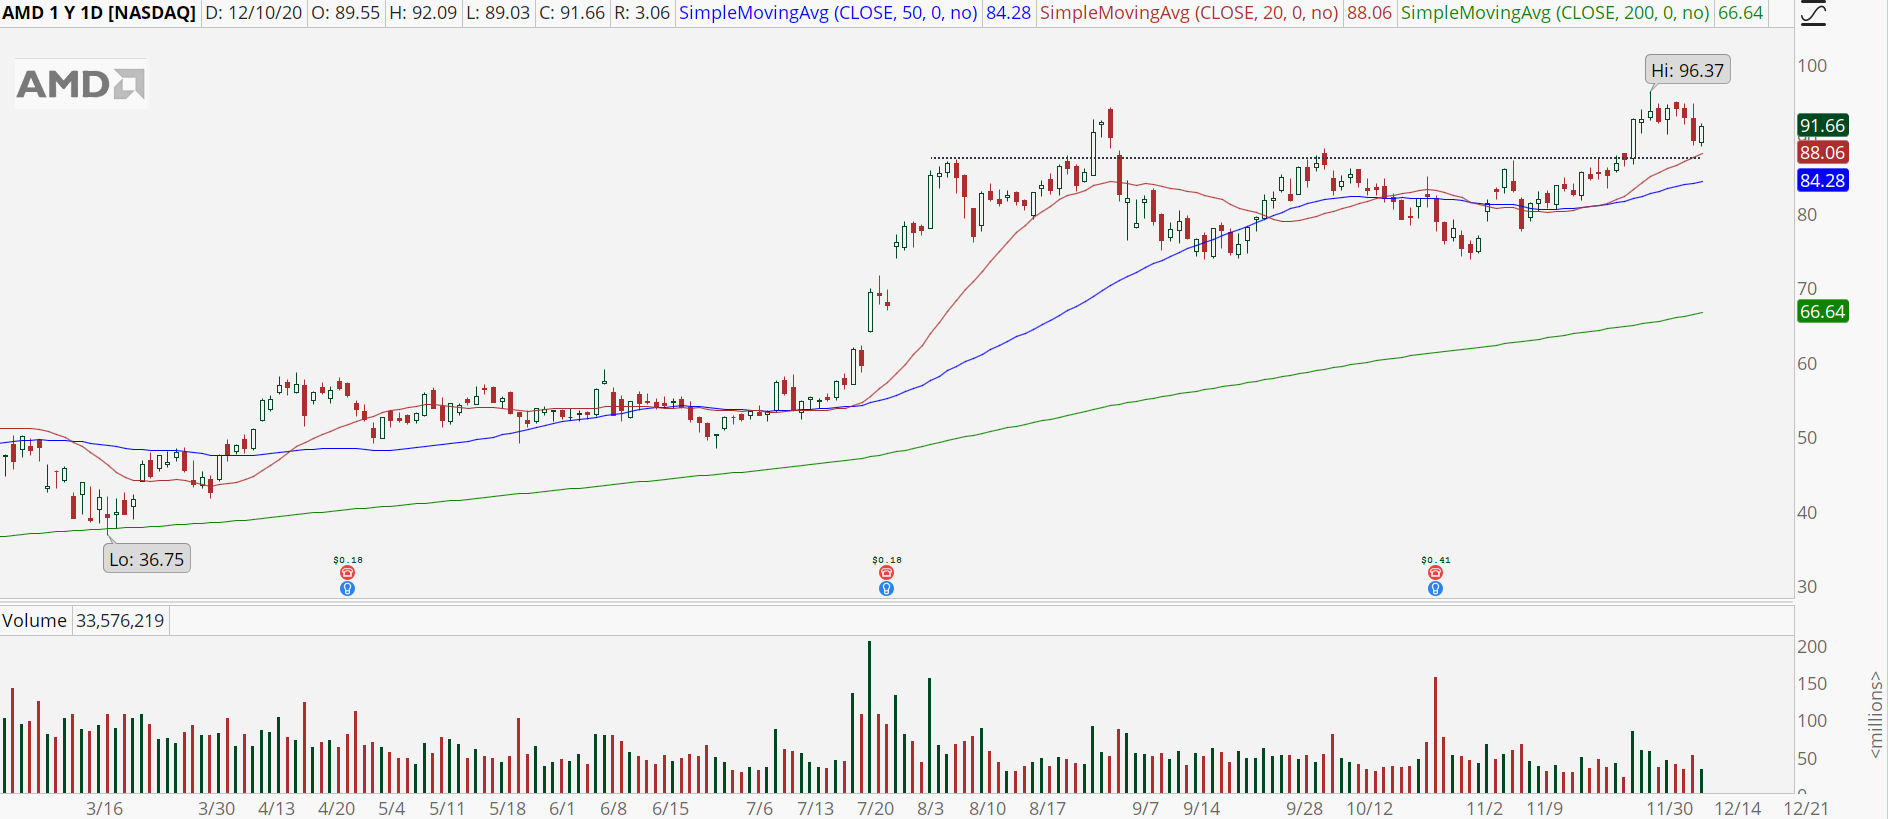 Advanced Micro Devices (AMD) stock chart with bull retracement